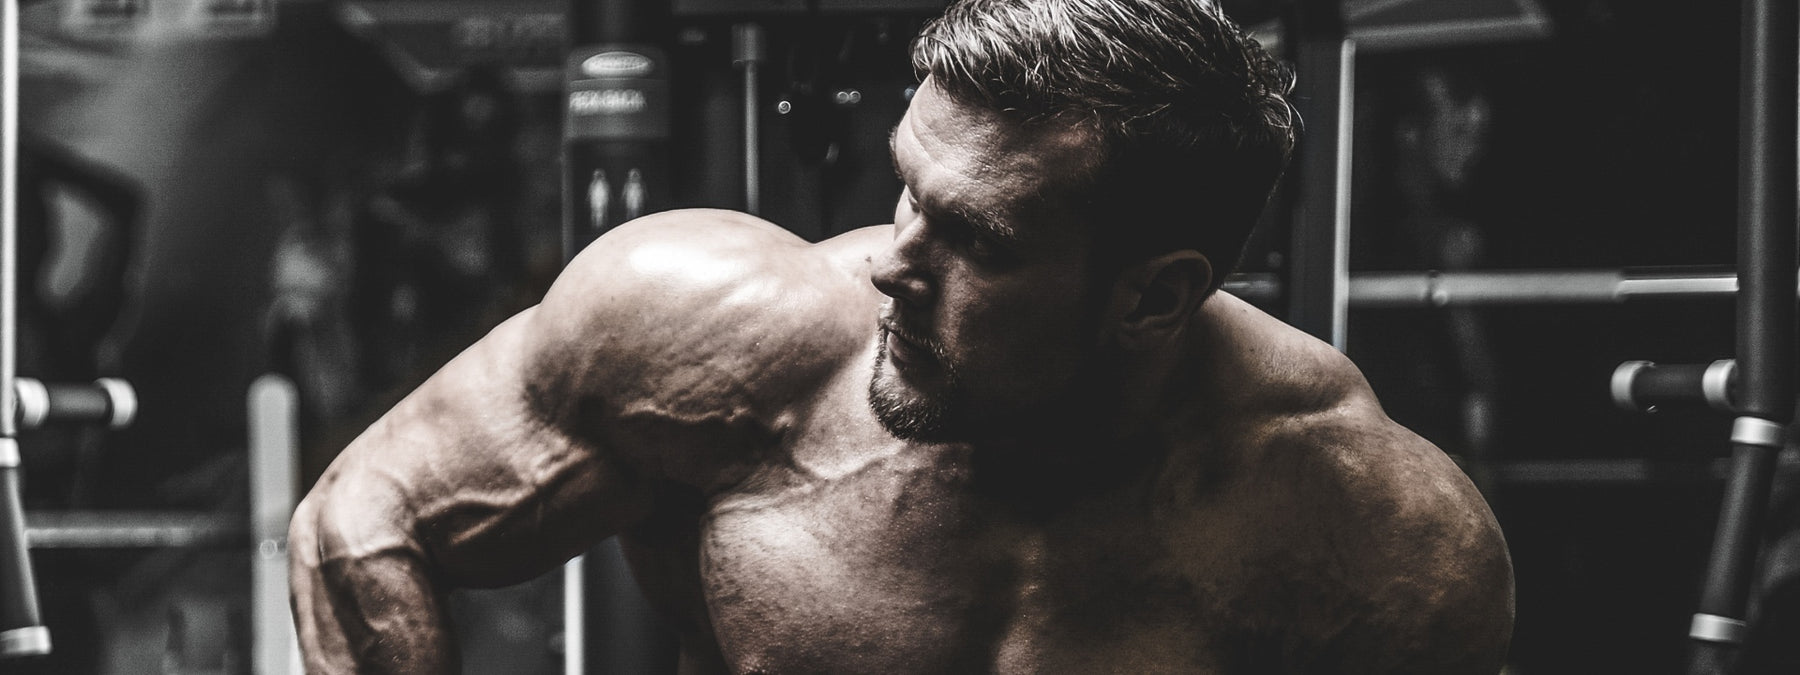 Dangers of Competition - Why Top Physique Competitors Suddenly Pass